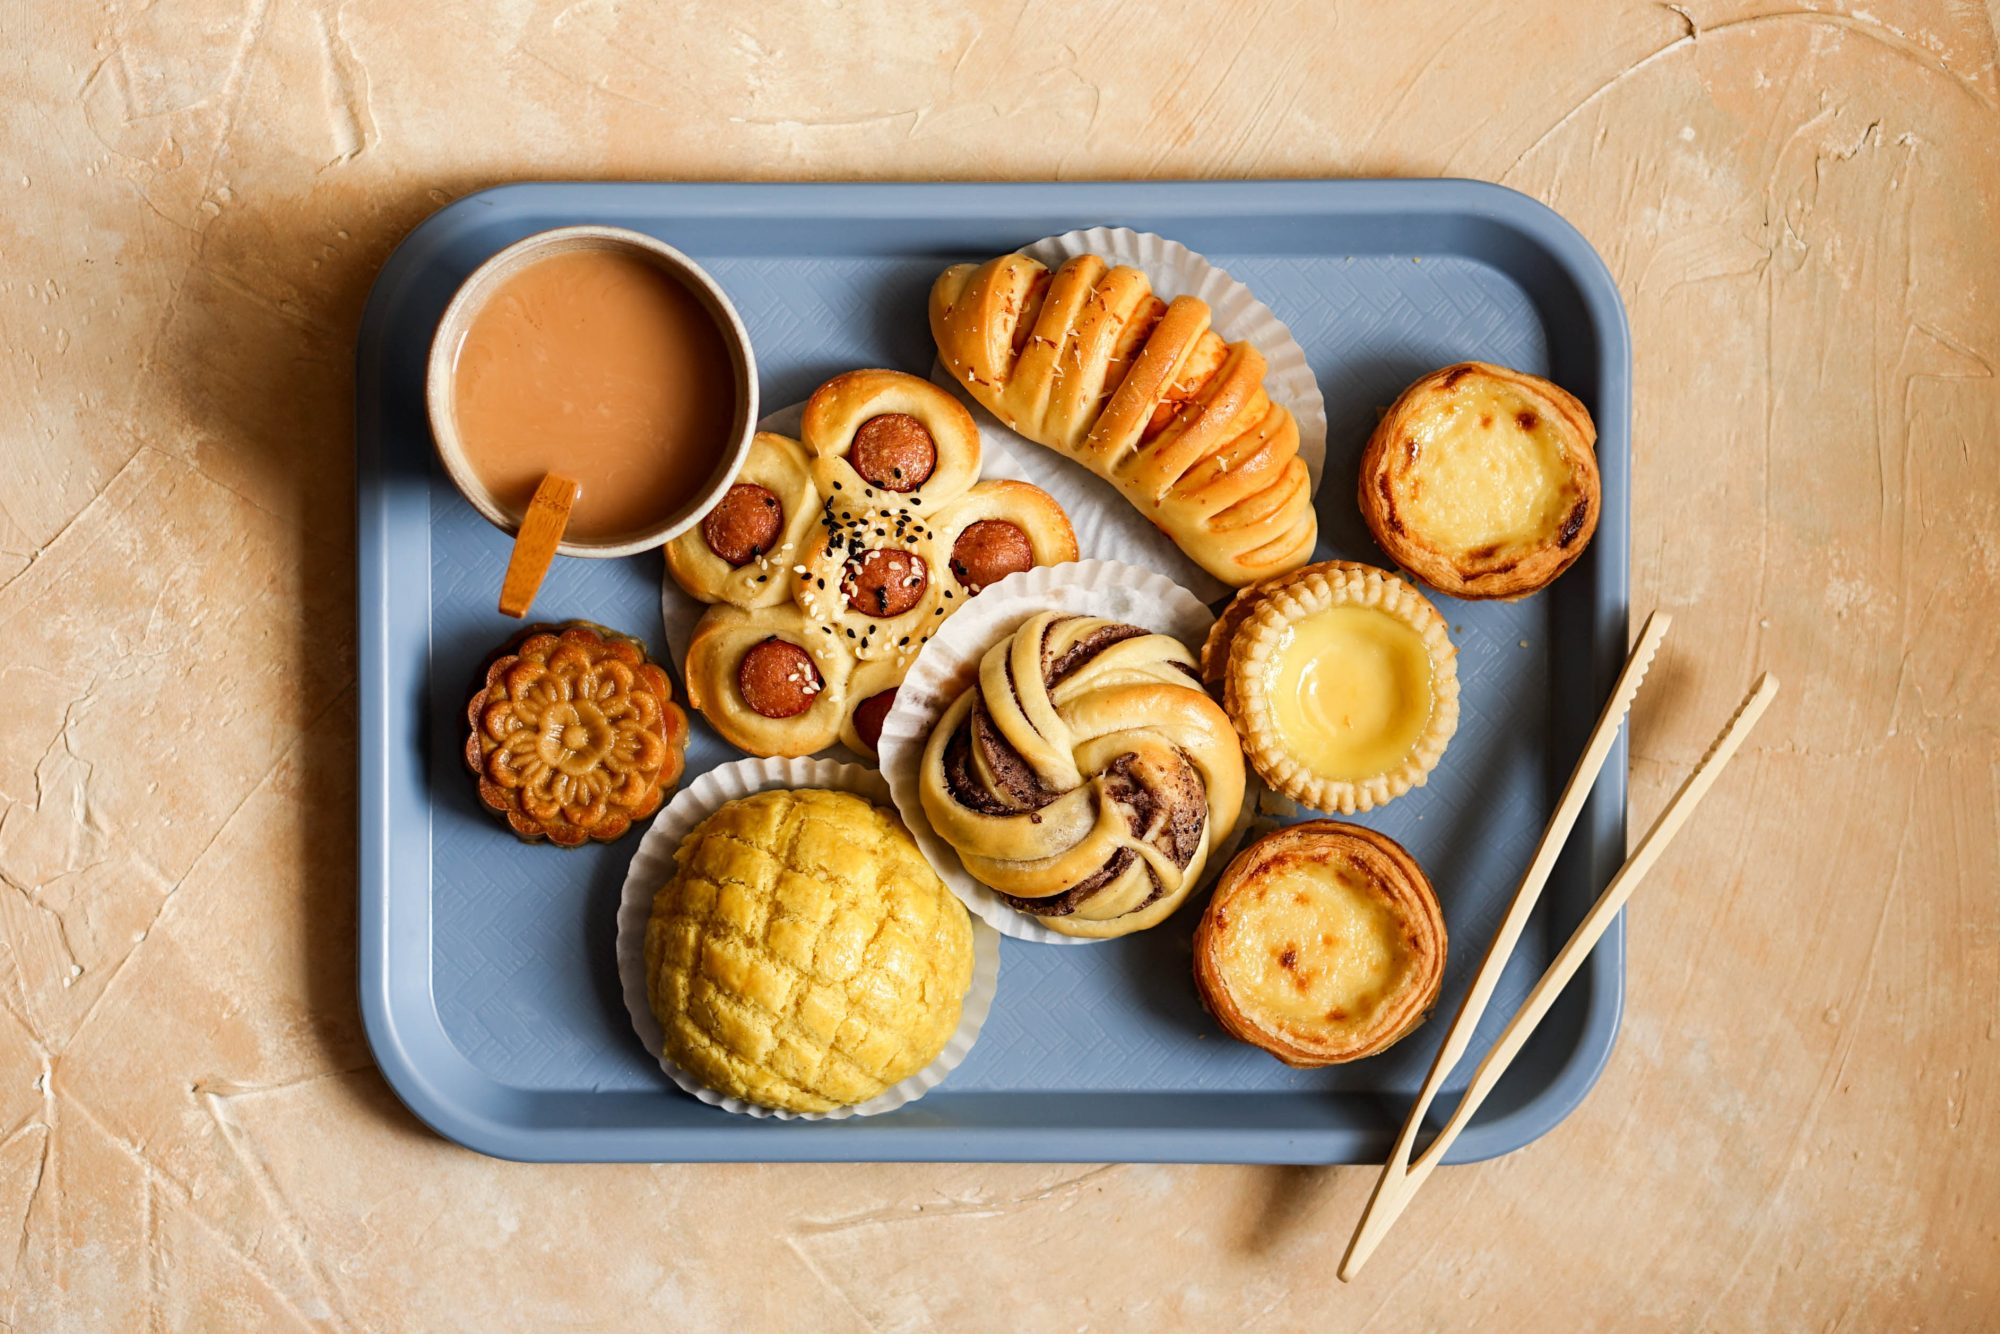 baked goods on food tray